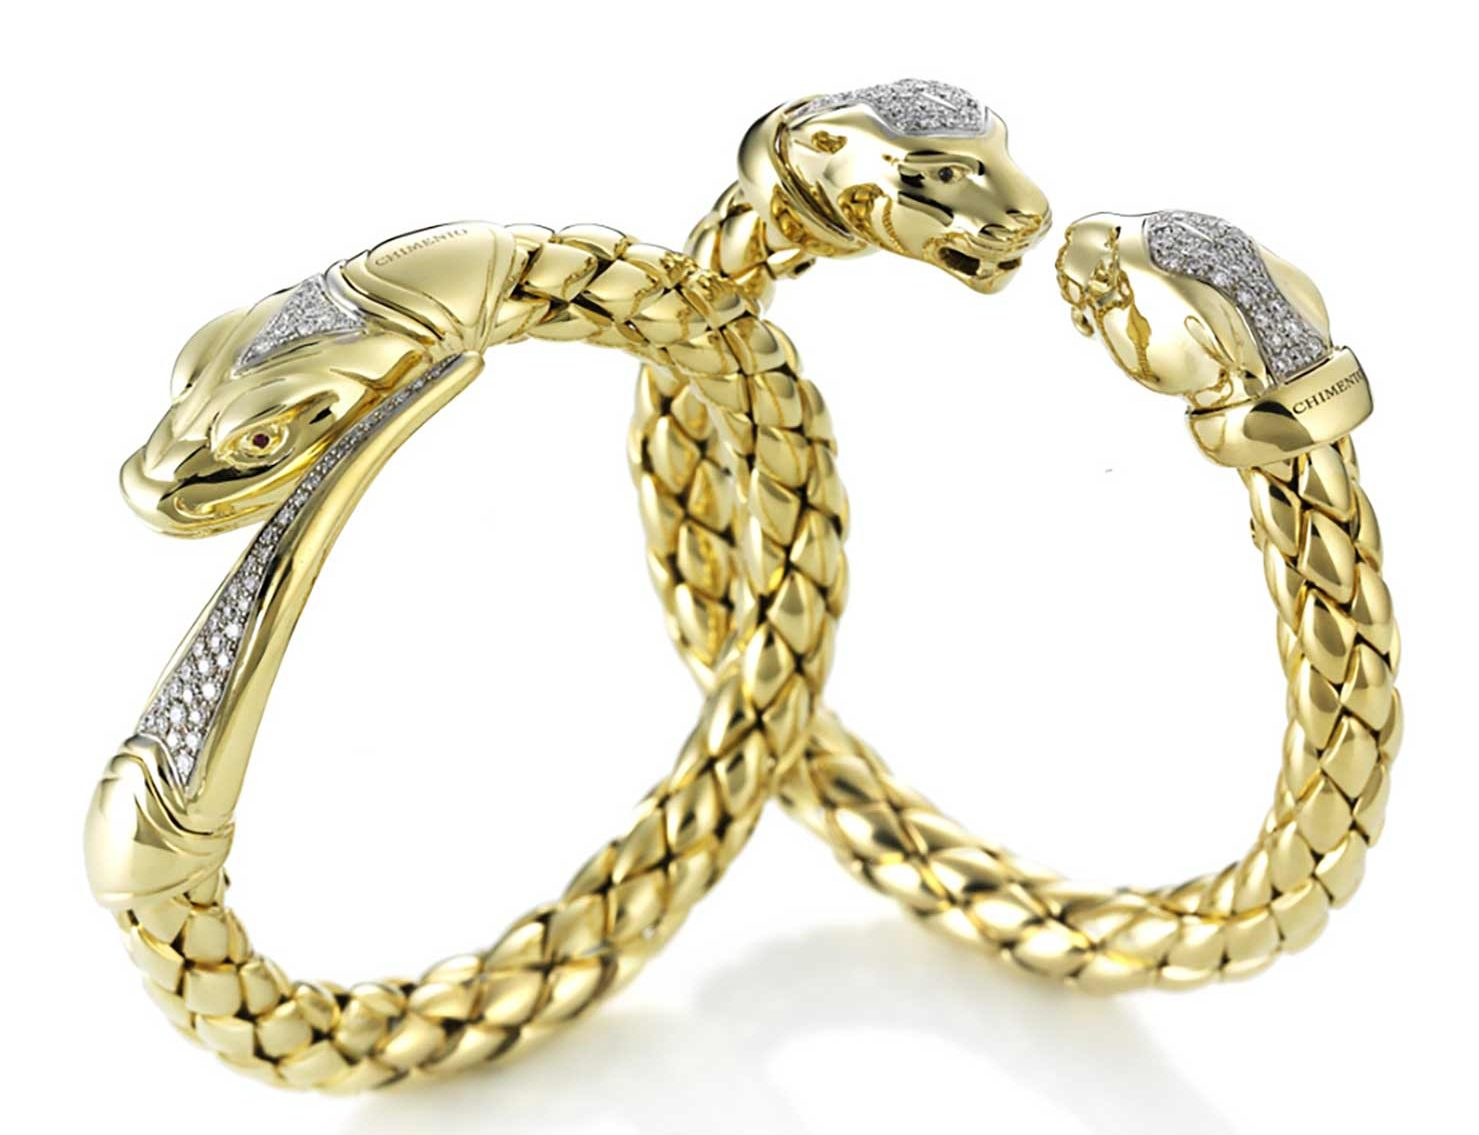 bracelets in yellow gold and diamonds with panther and snake motifs.